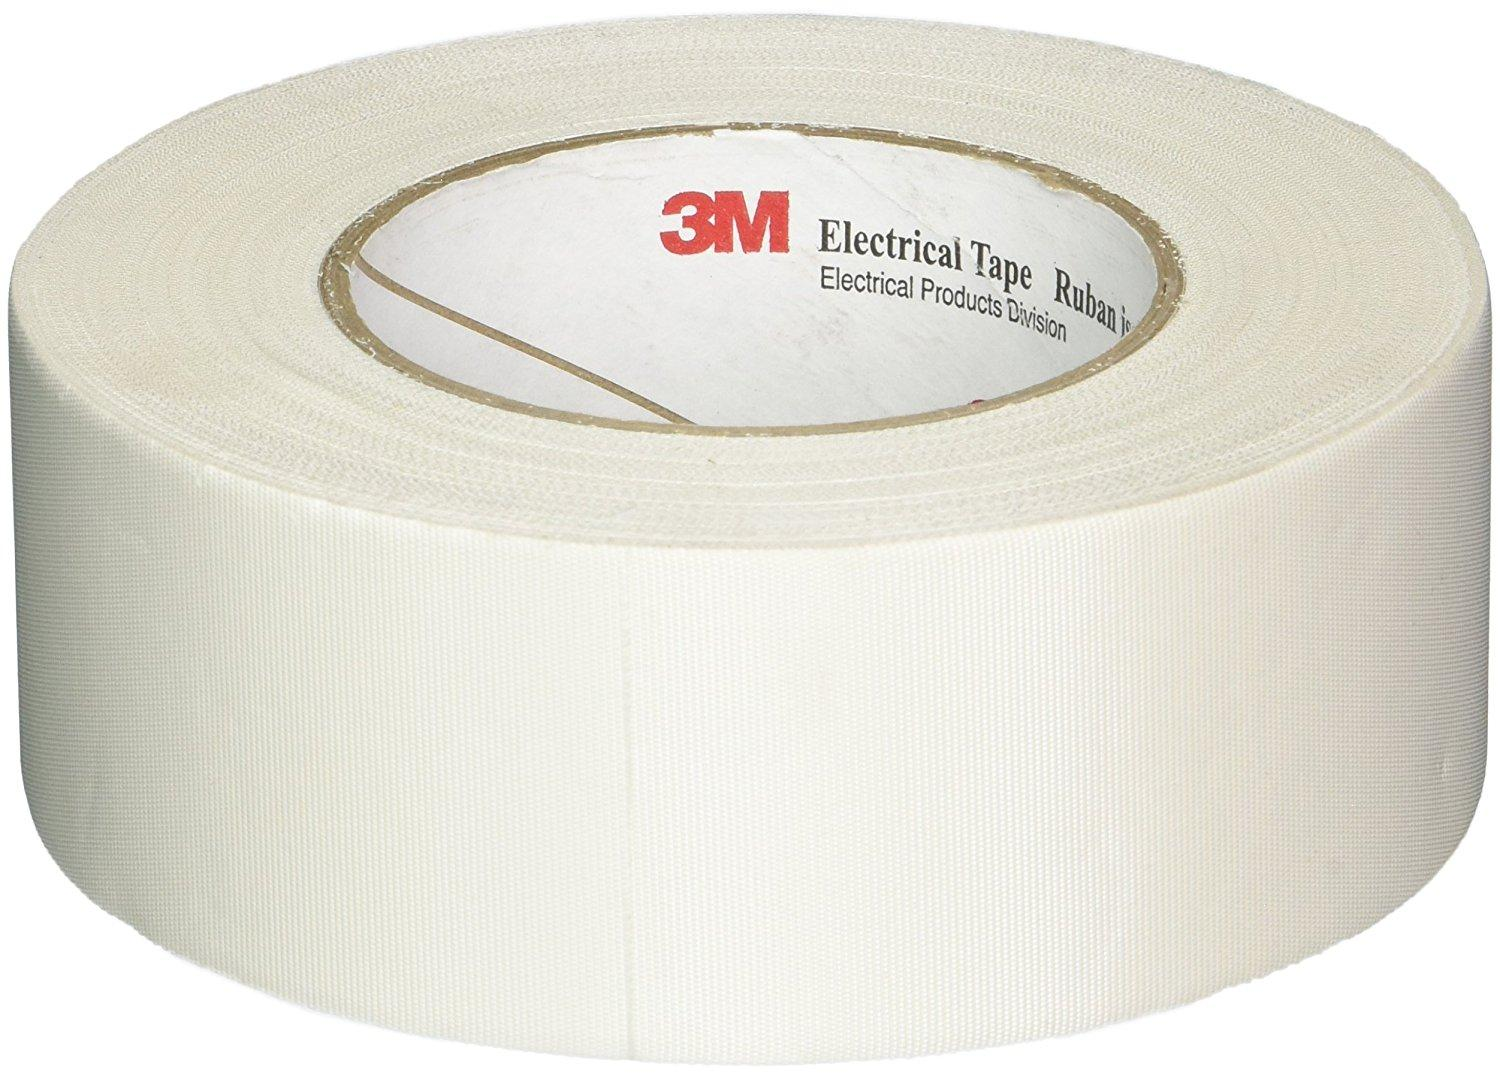 3m Glazing Tape : M glass cloth electrical tape white multiple sizes